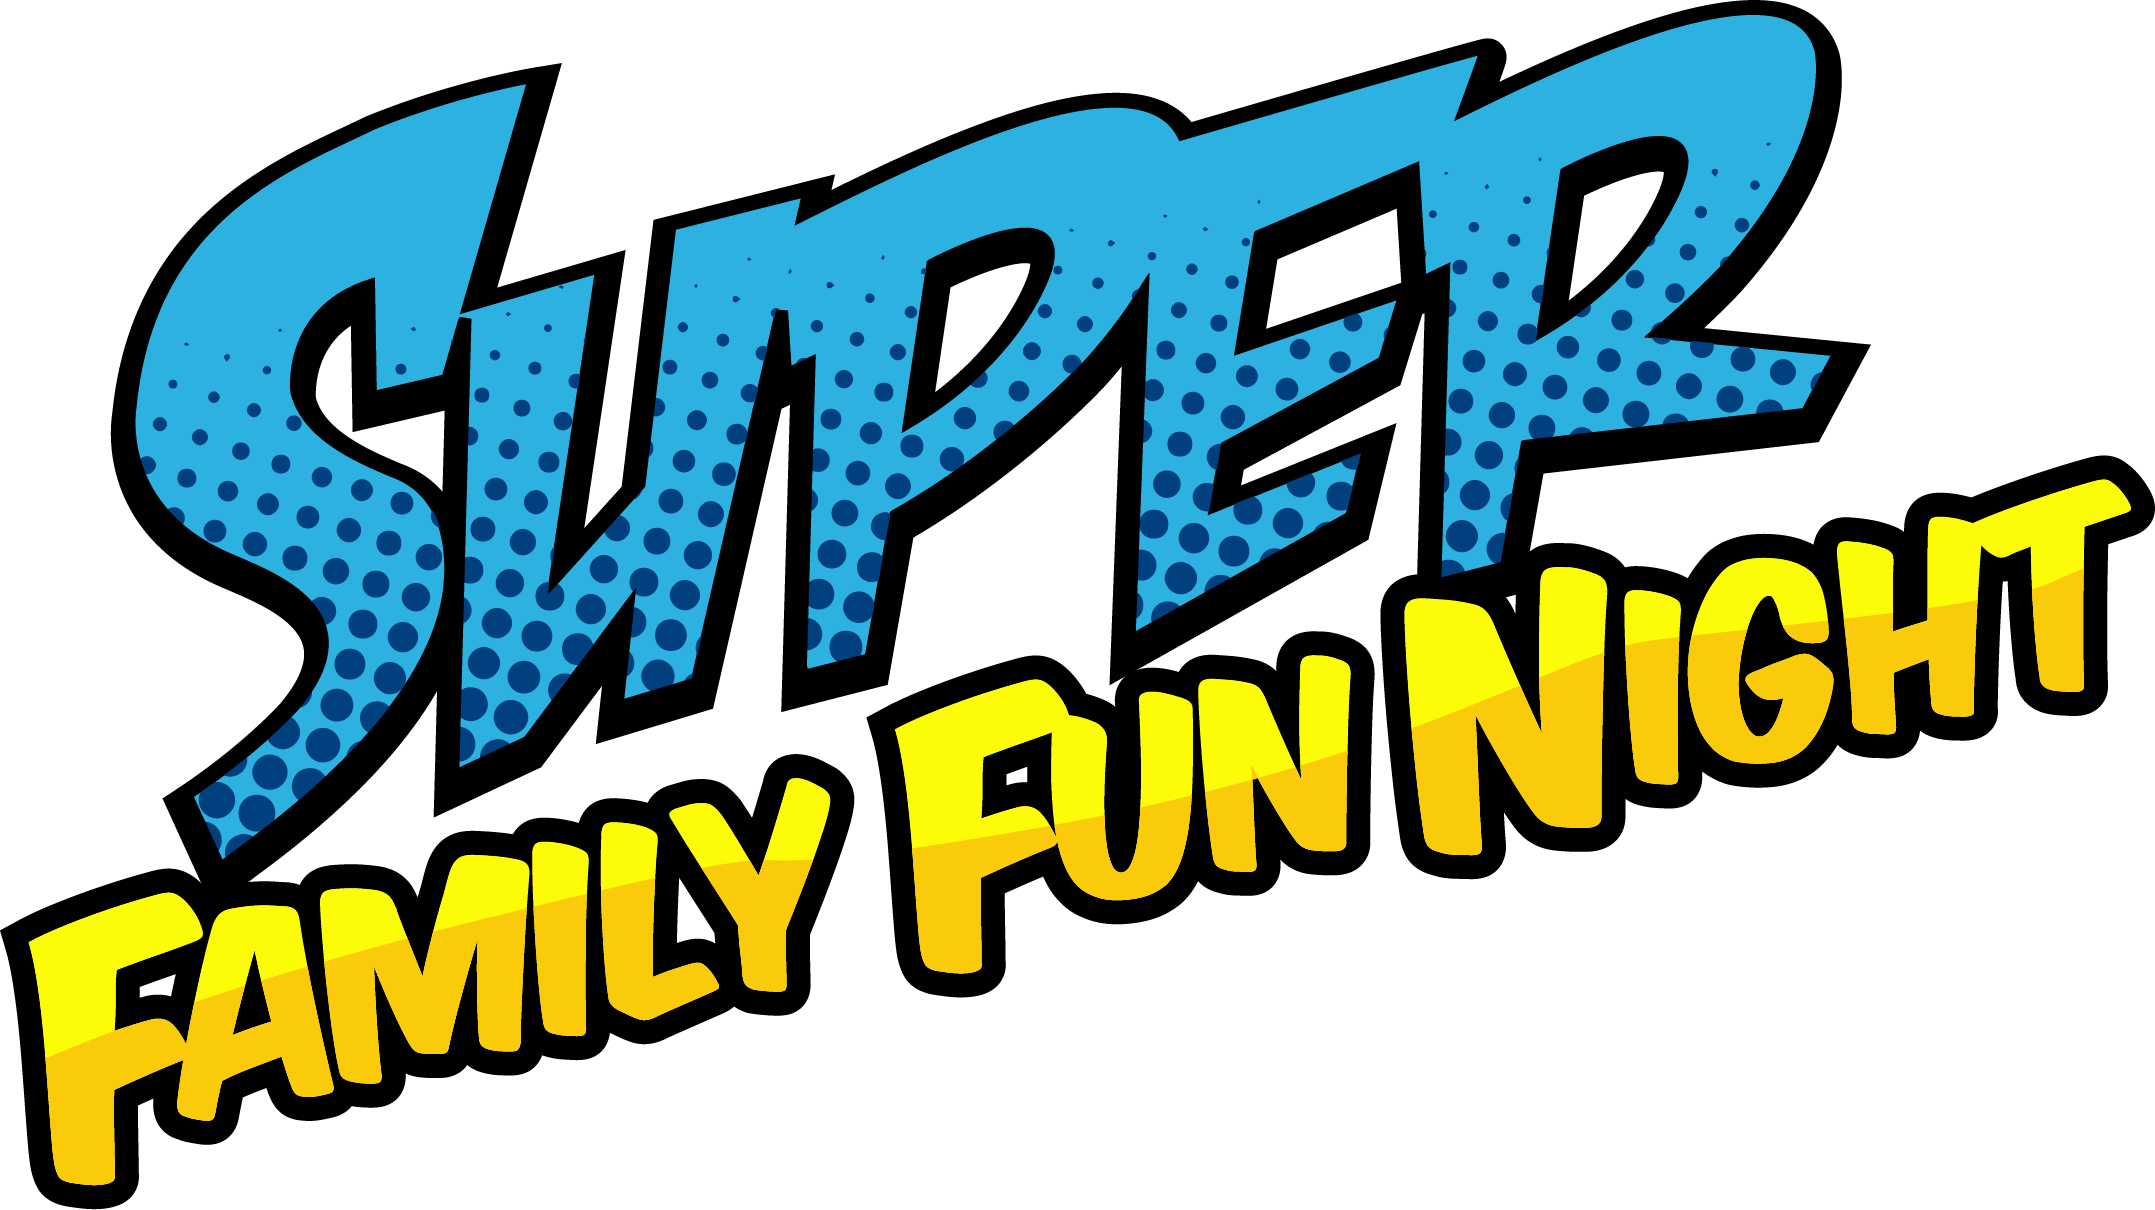 Free Family Fun Night Clipart Clipart 2017 ClipArt.